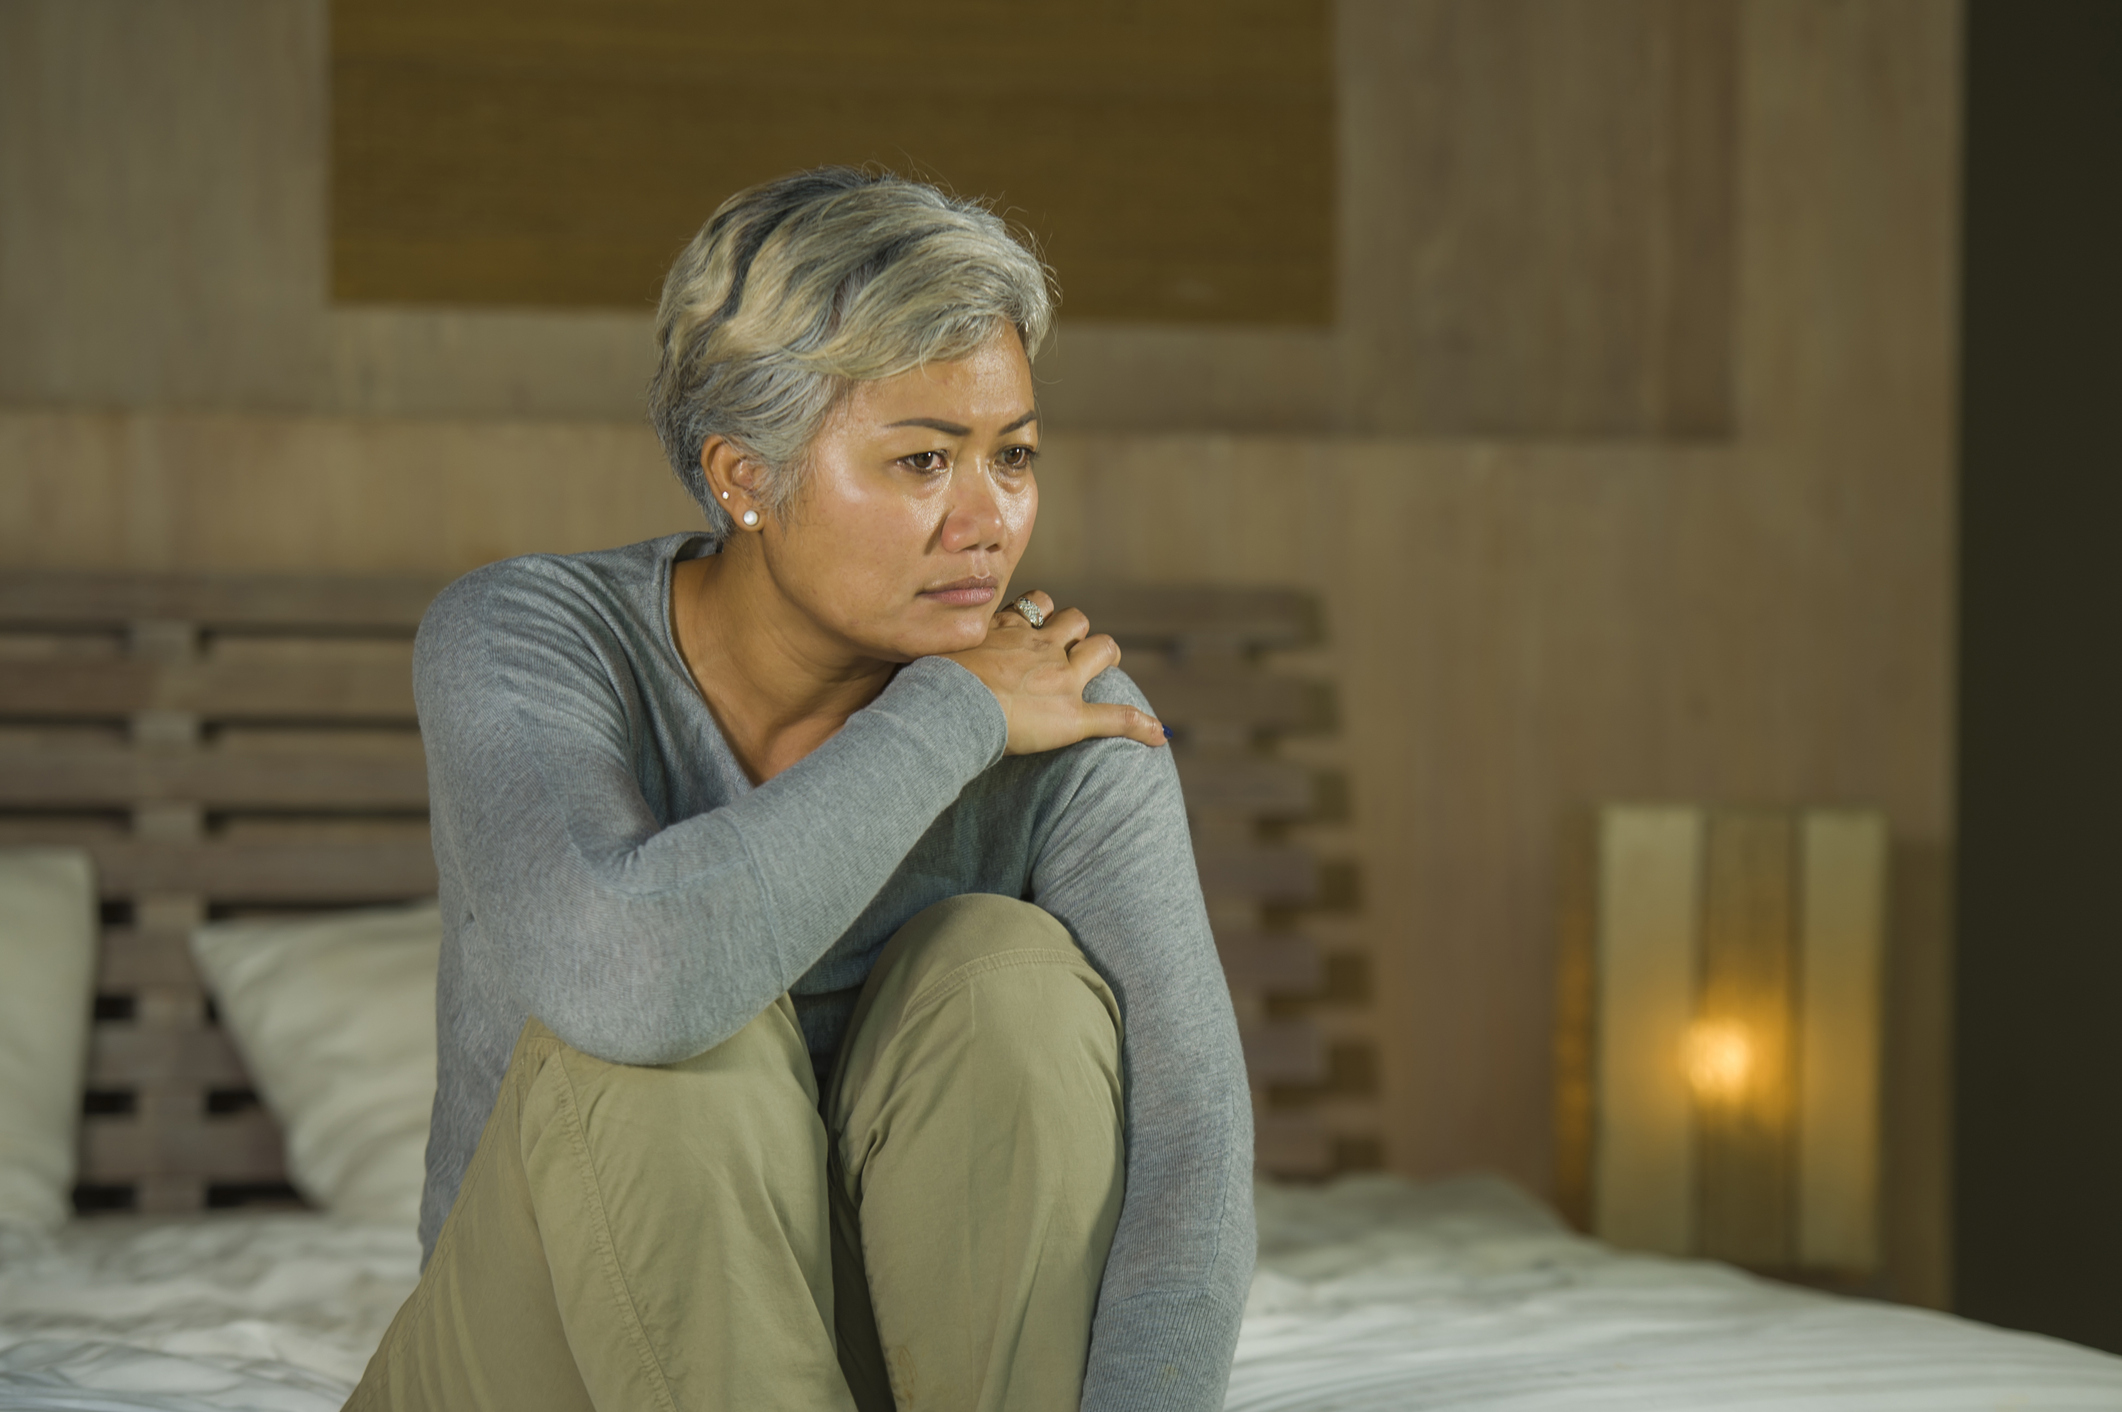 3 things loneliness does to your body that leads to disease